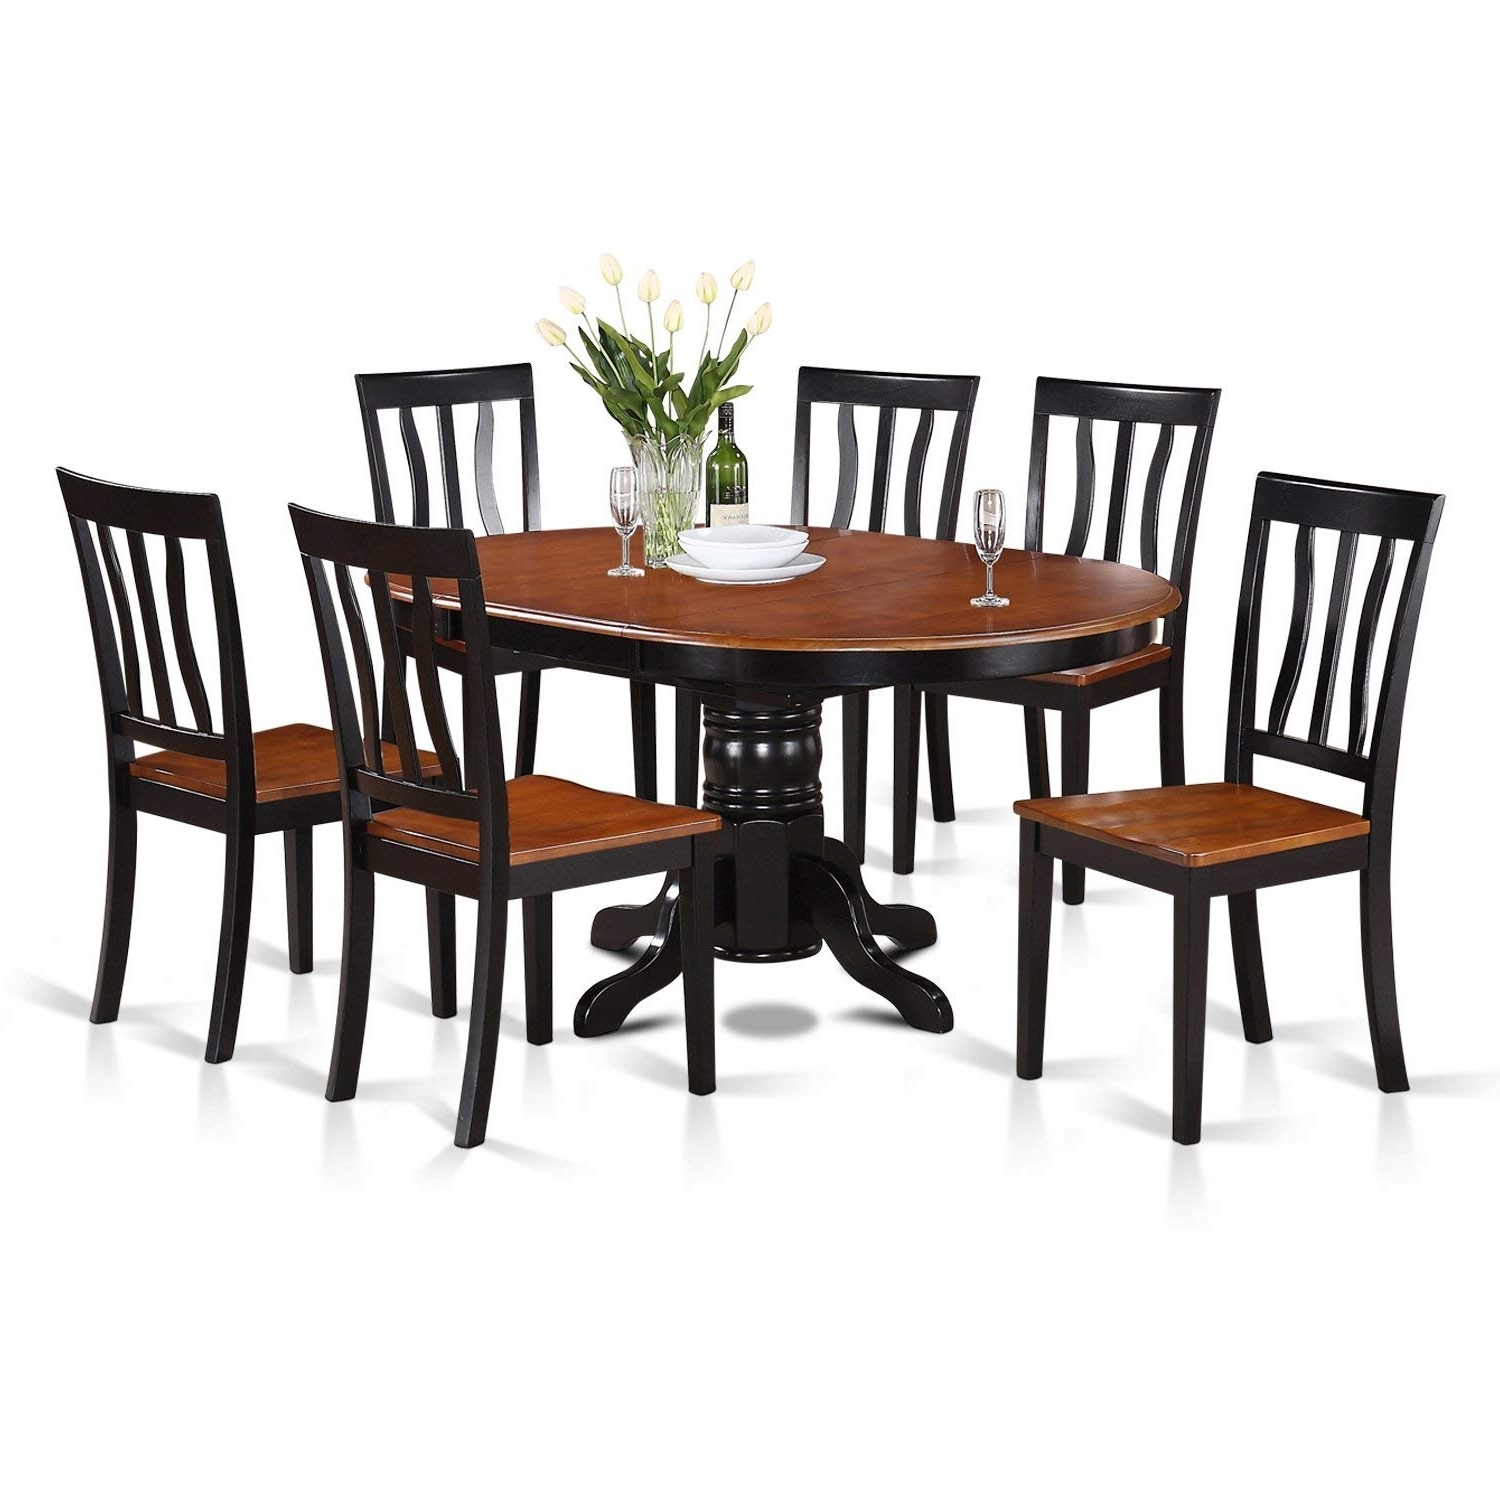 Favorite Amazon: East West Furniture Avat7 Blk W 7 Piece Dining Table Set Pertaining To Craftsman 7 Piece Rectangle Extension Dining Sets With Side Chairs (View 5 of 25)